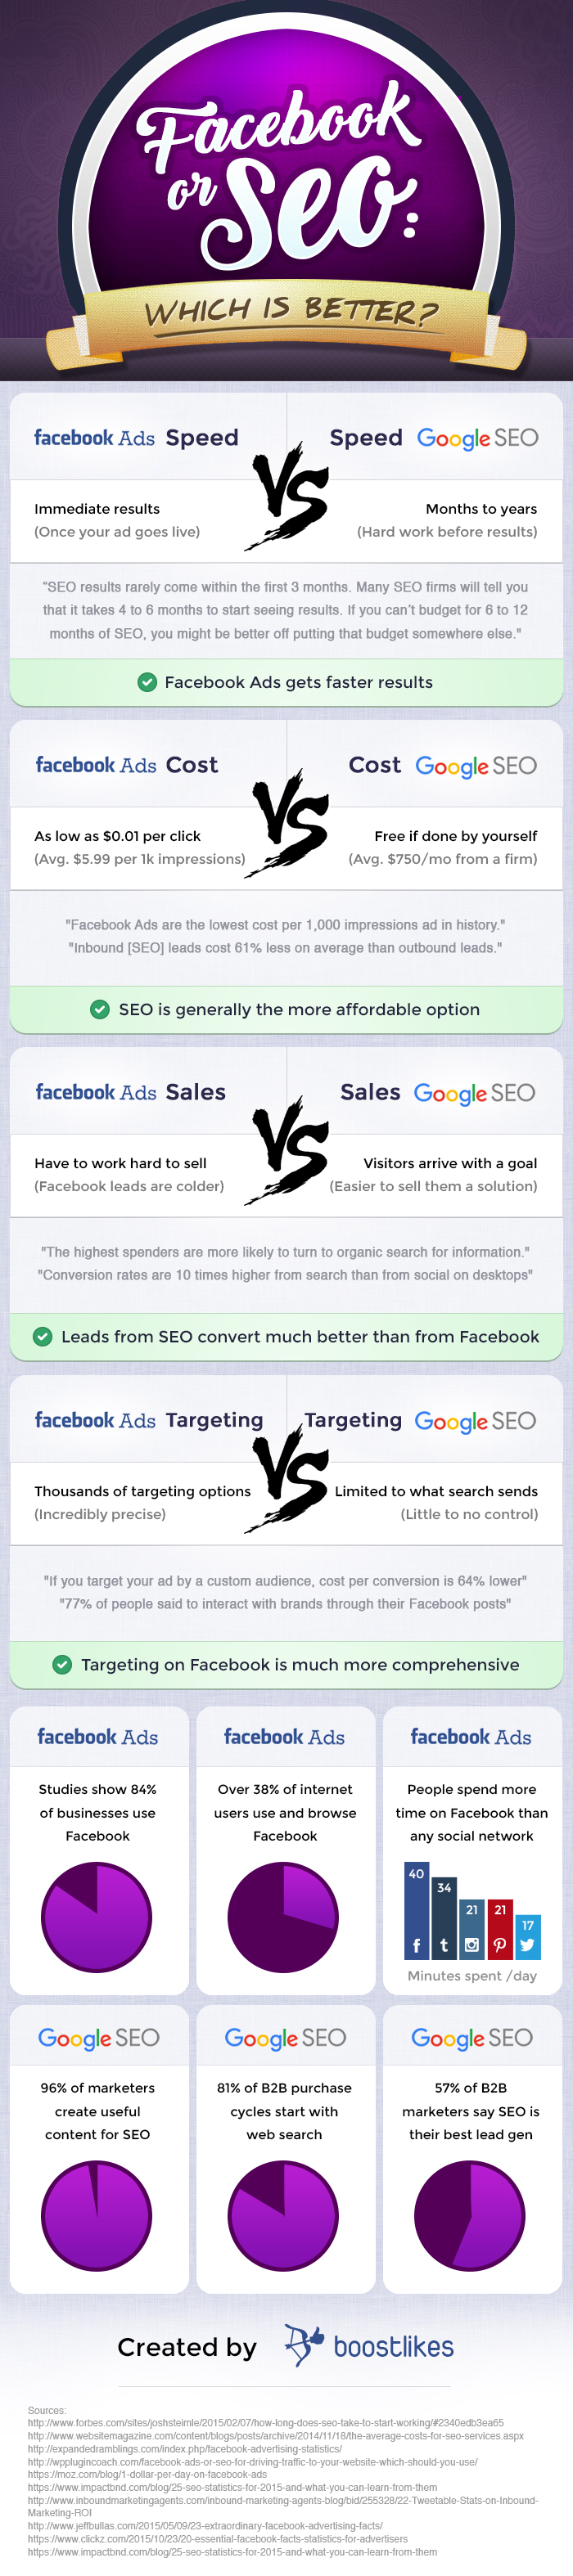 Facebook or SEO: Which is Better?